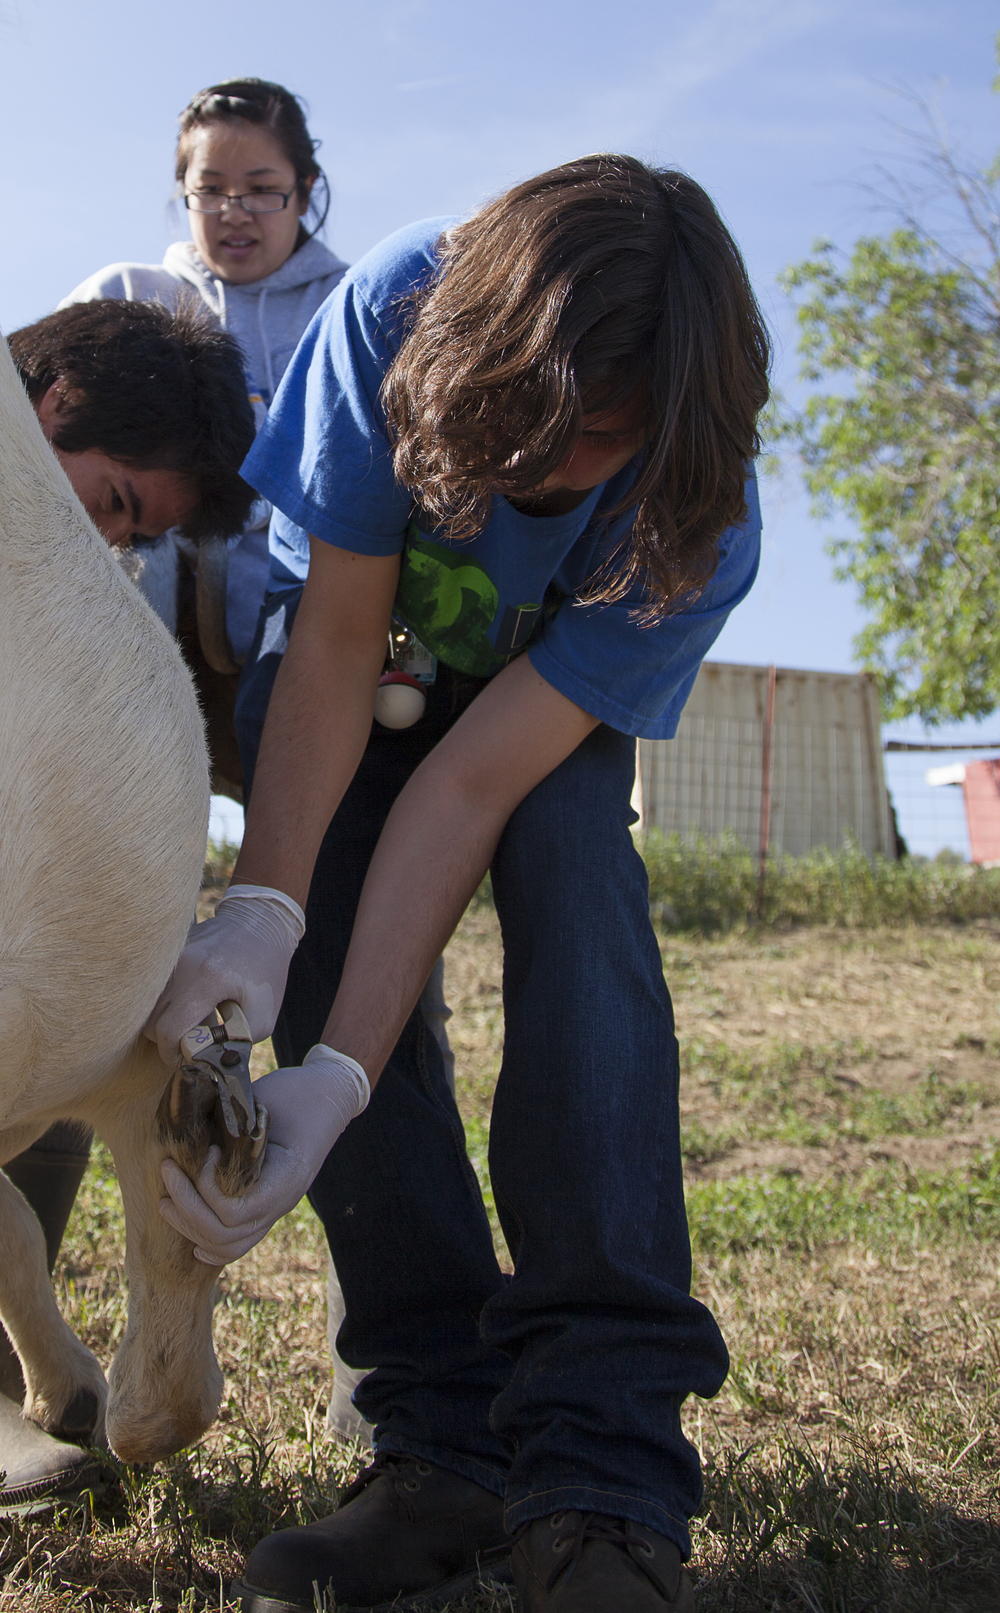 Pre-vet major Ivan Barraza clips and trims the hoof of Flag, the goat, during a routine physical examination at the Pierce farm on Friday, March 20, 2015. Woodland Hills, Calif.  Read the full story  here